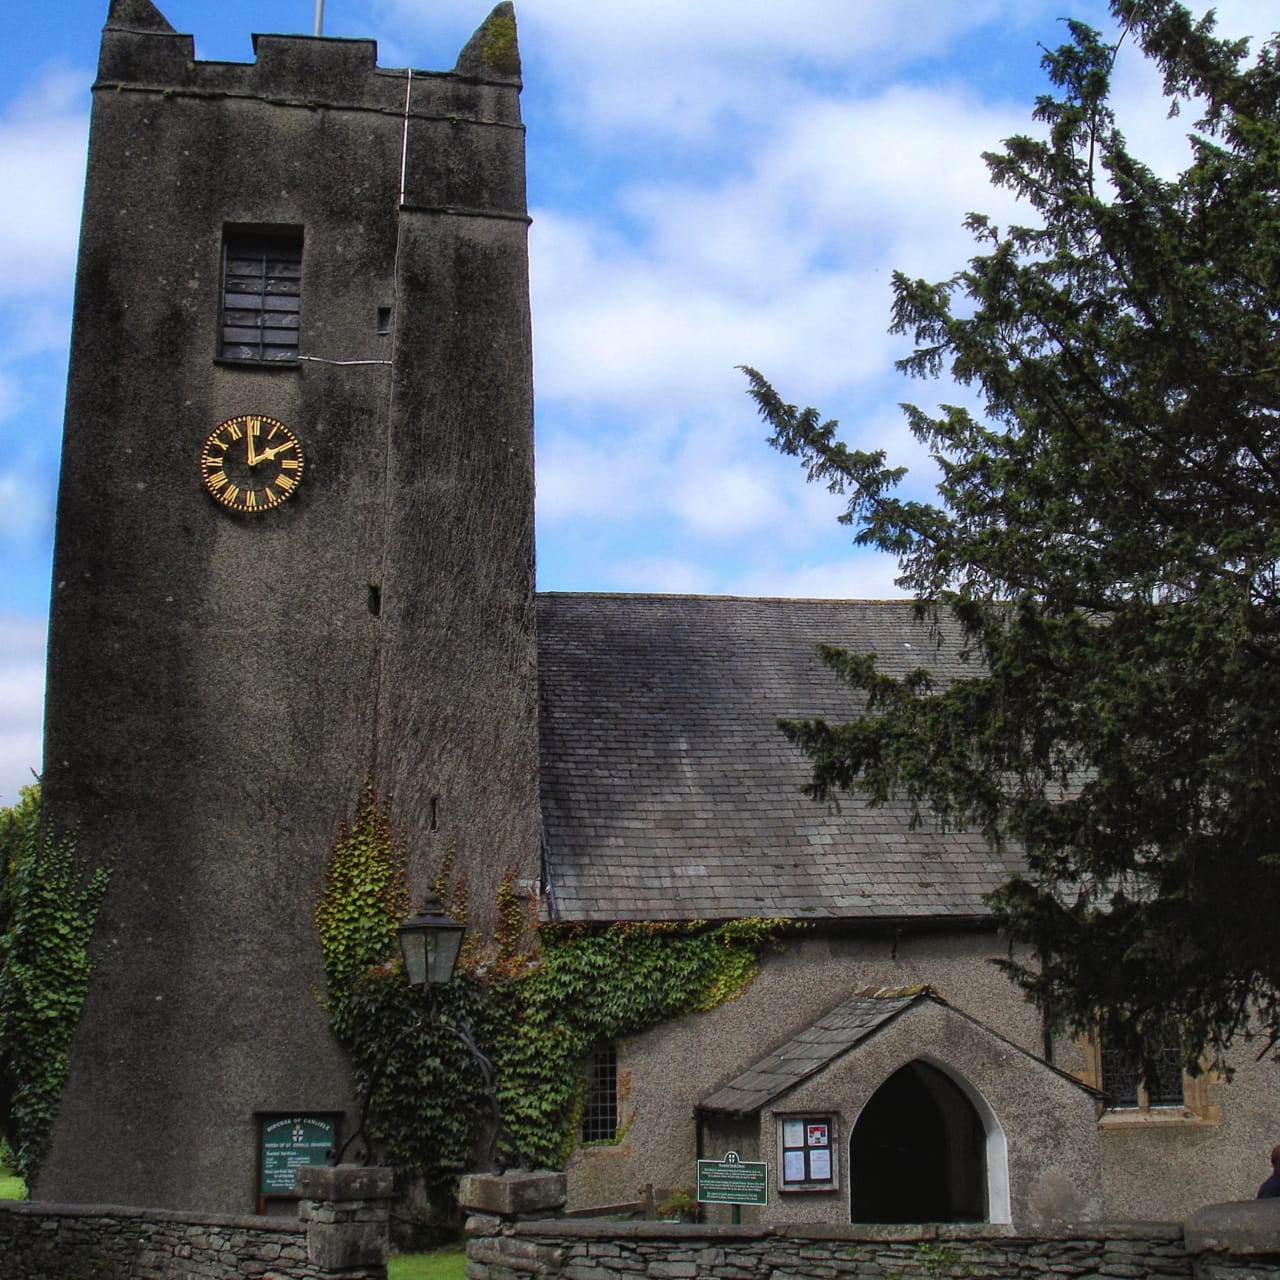 St. Oswald's Church in Grasmere